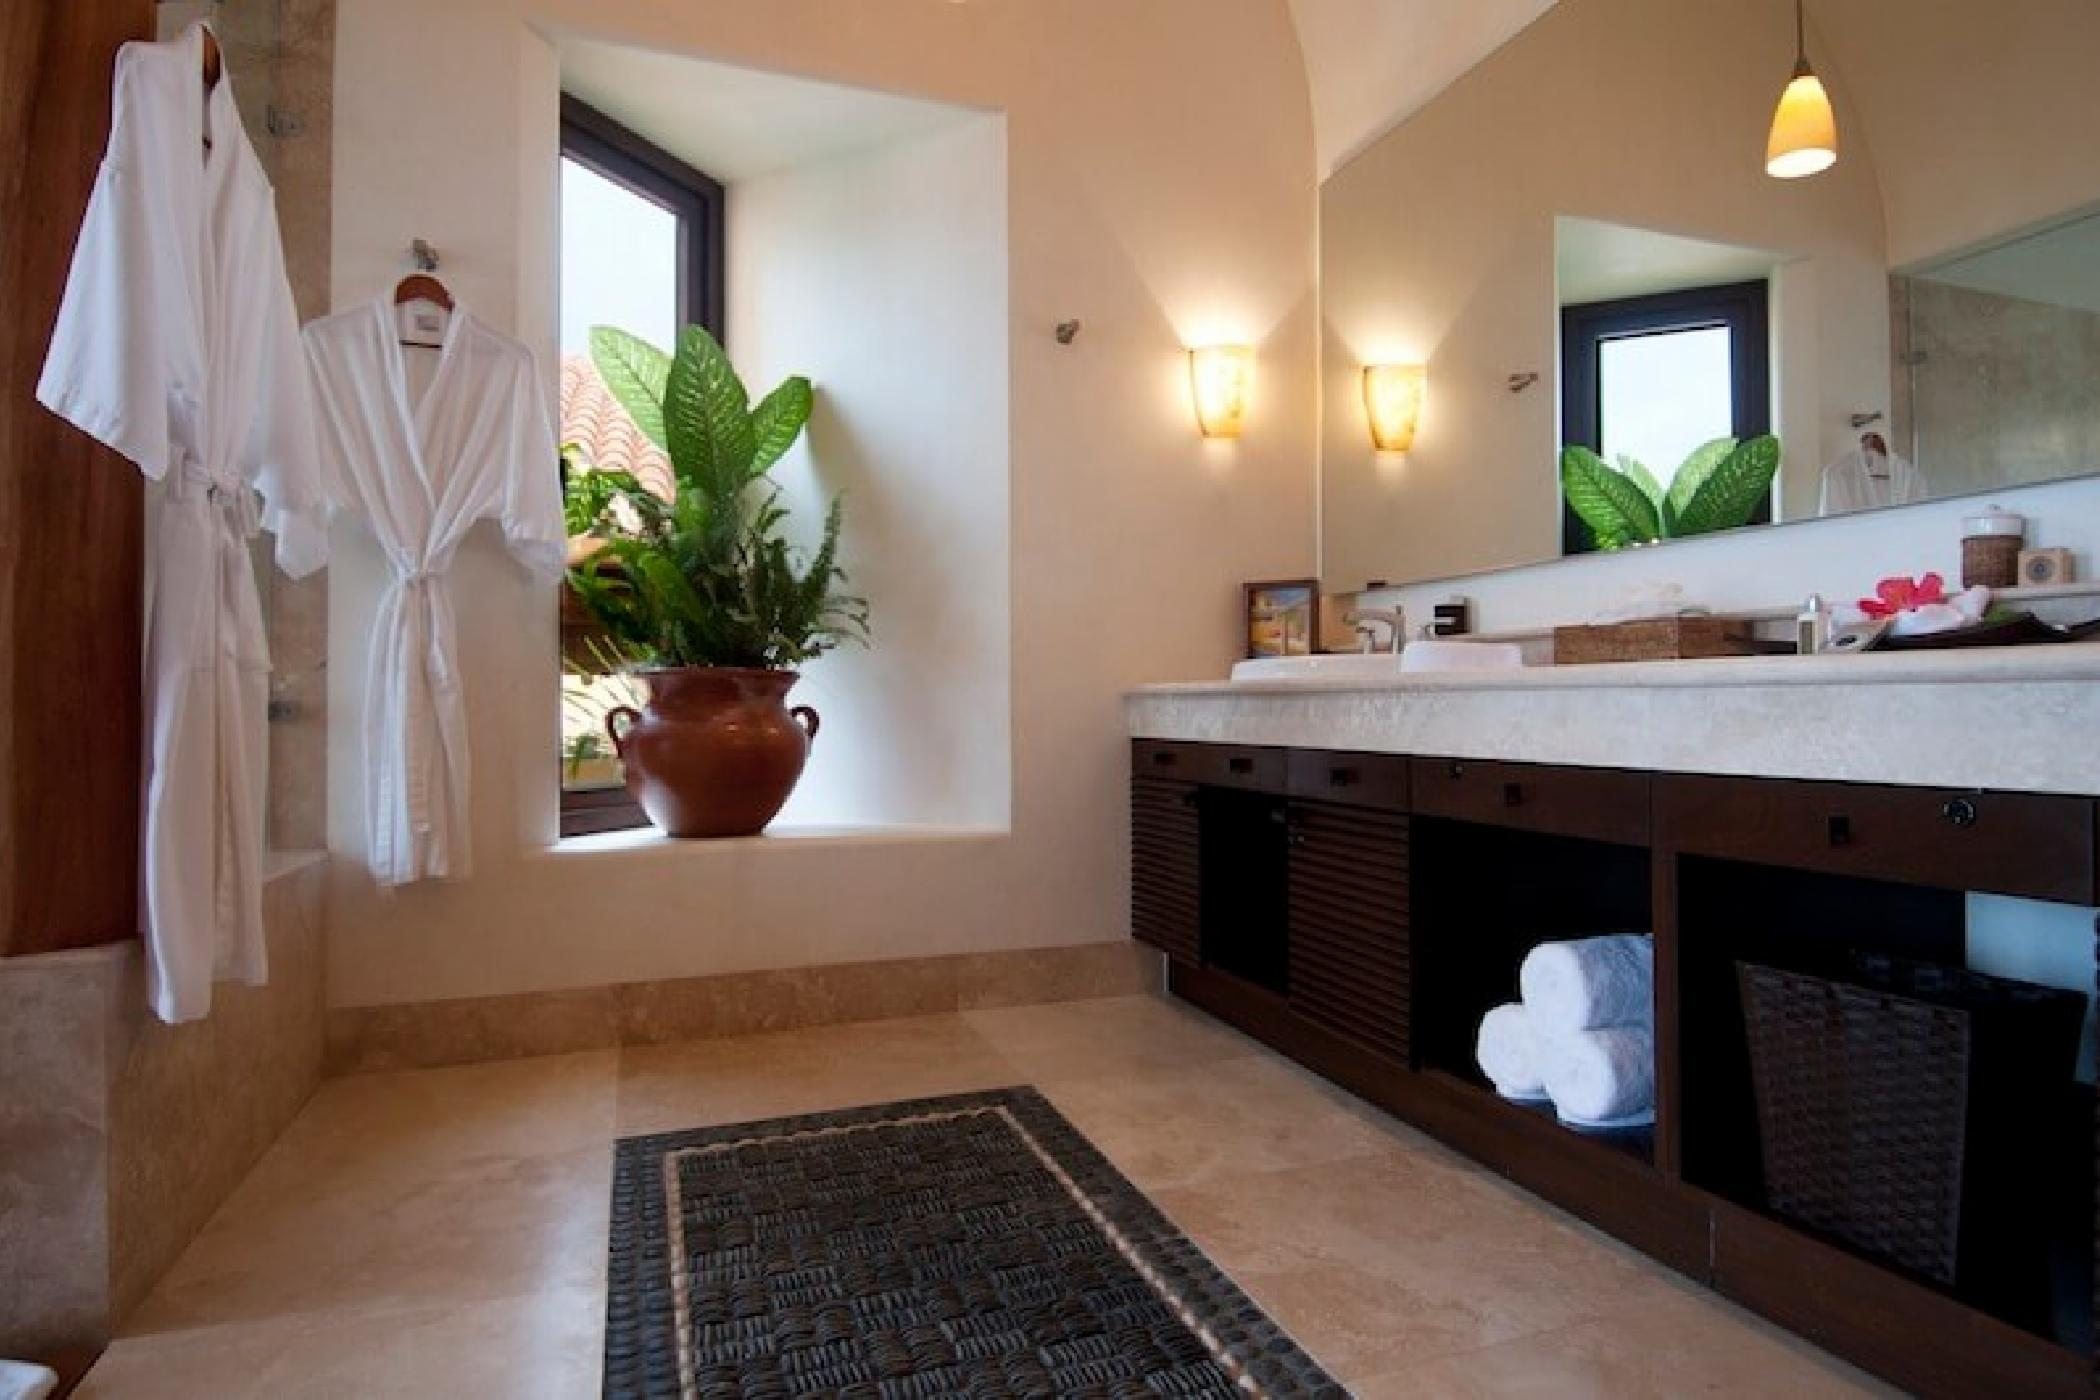 All rooms have ensuite baths with robes and luxurious soaps and shampoos.